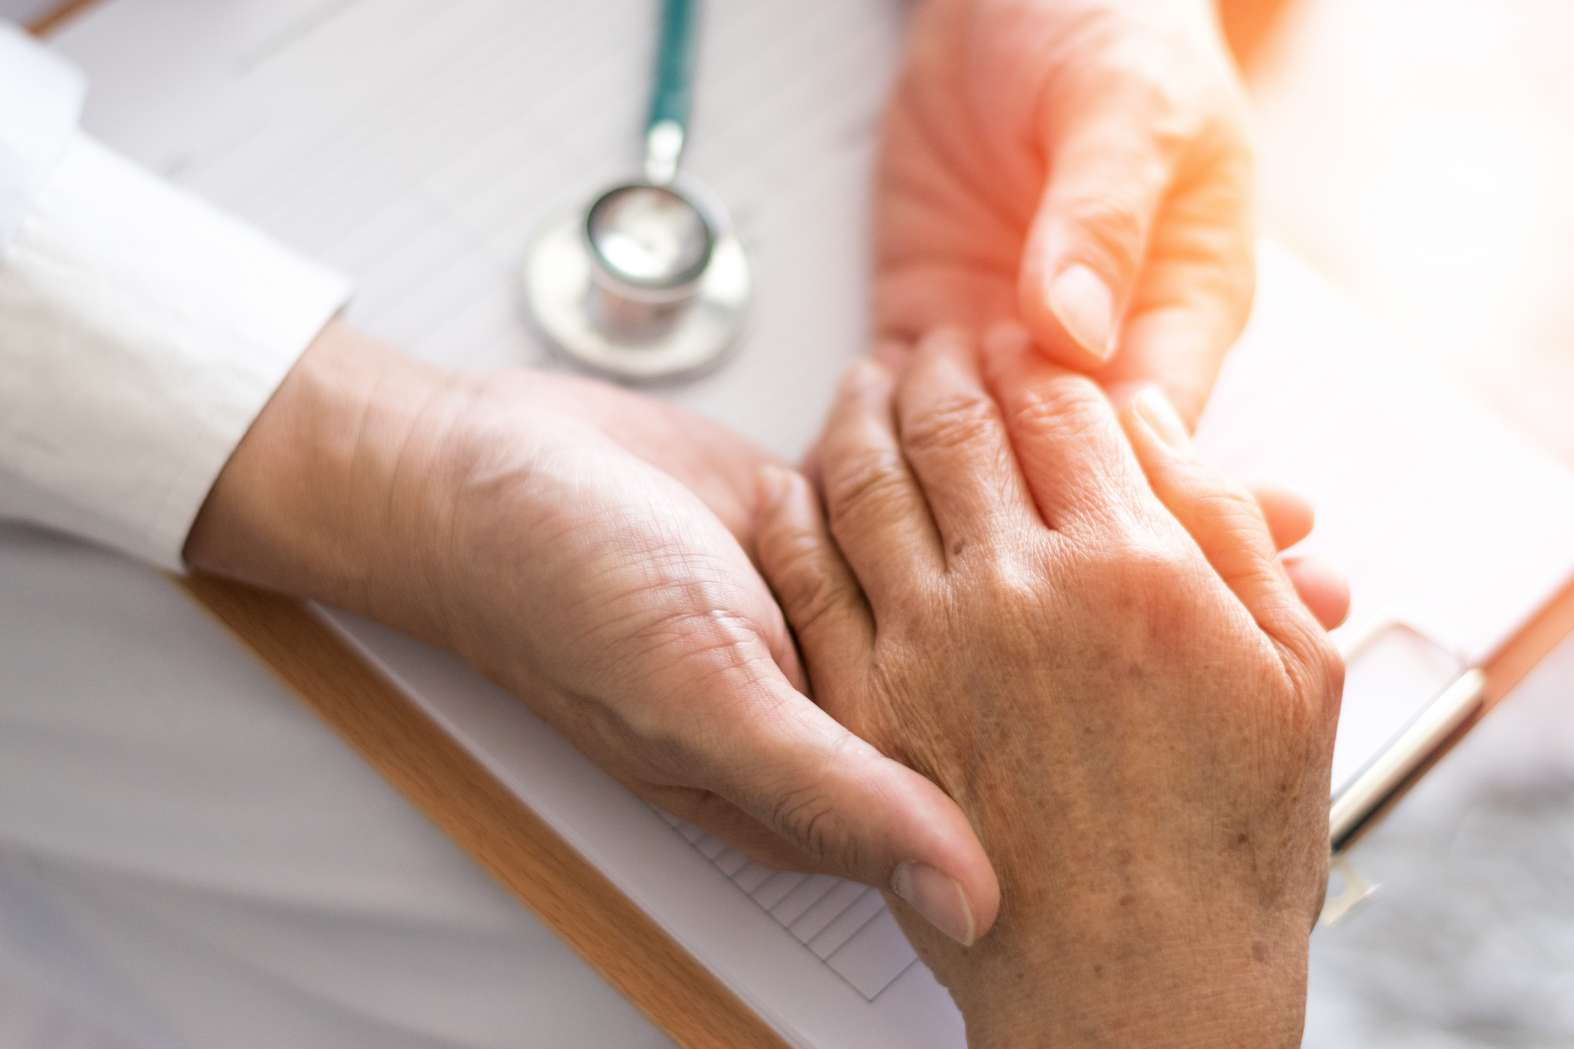 The Top 5 Immunizations for Older Adults